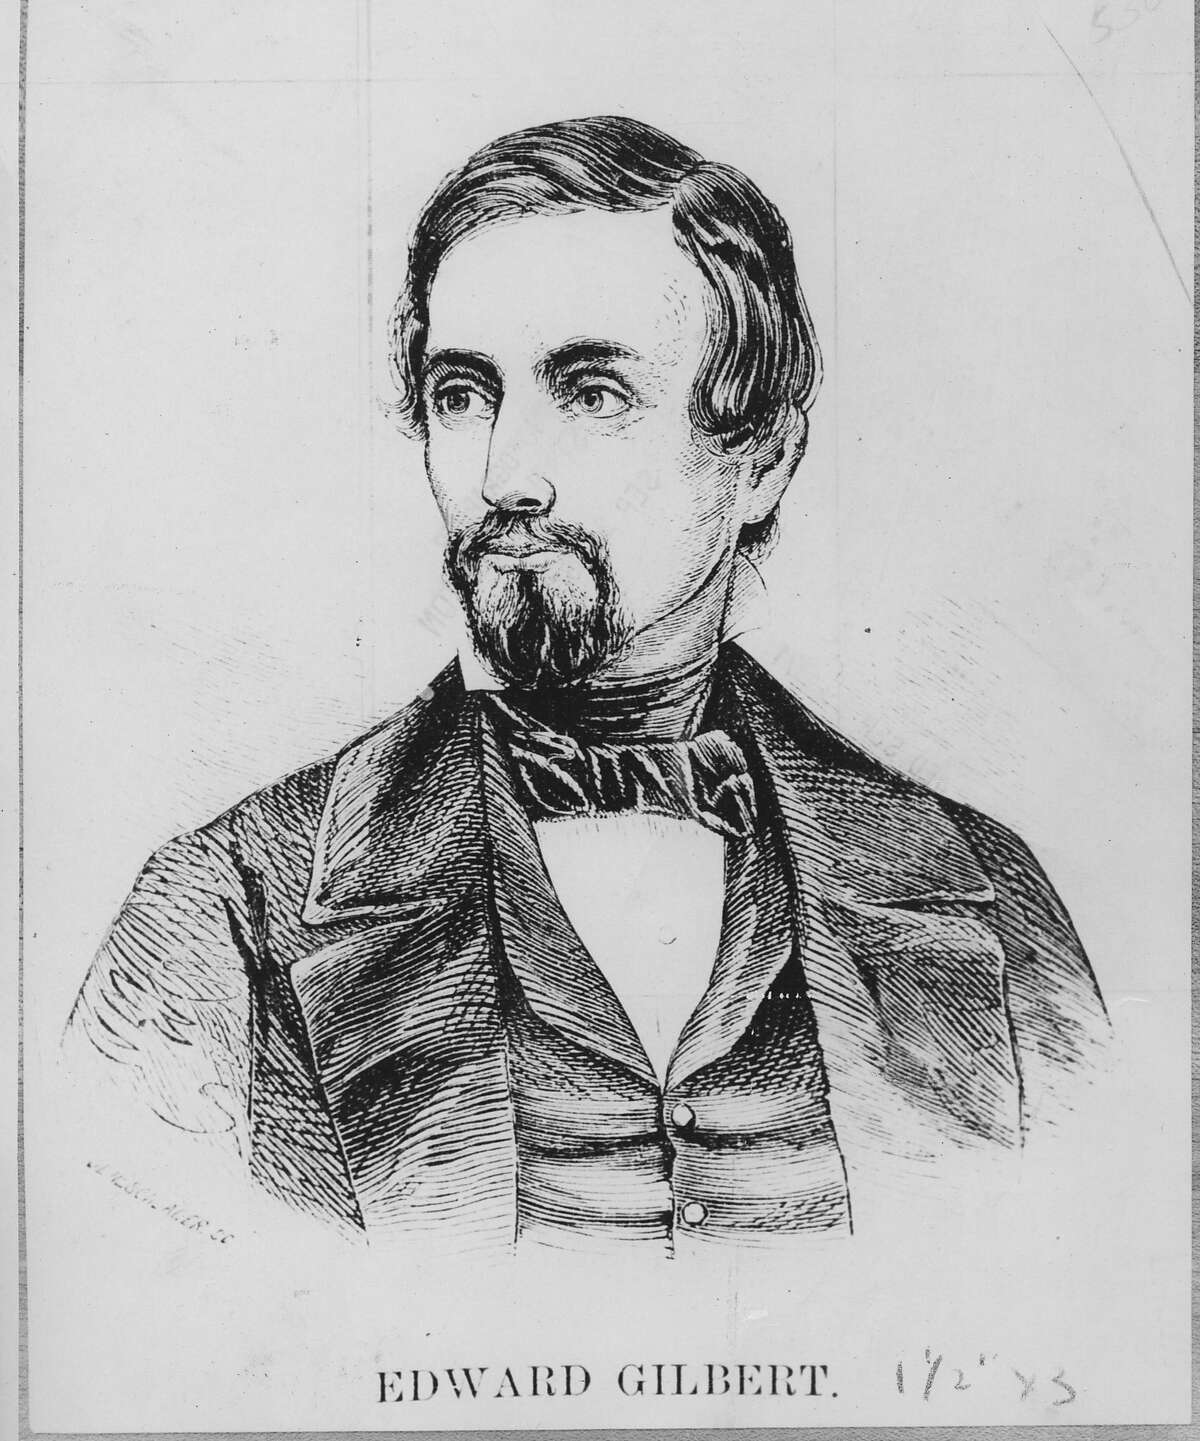 Edward Gilbert, San Francisco journalist who would be shot and killed in a duel with James W. Denver in the 1850s. Handout photo